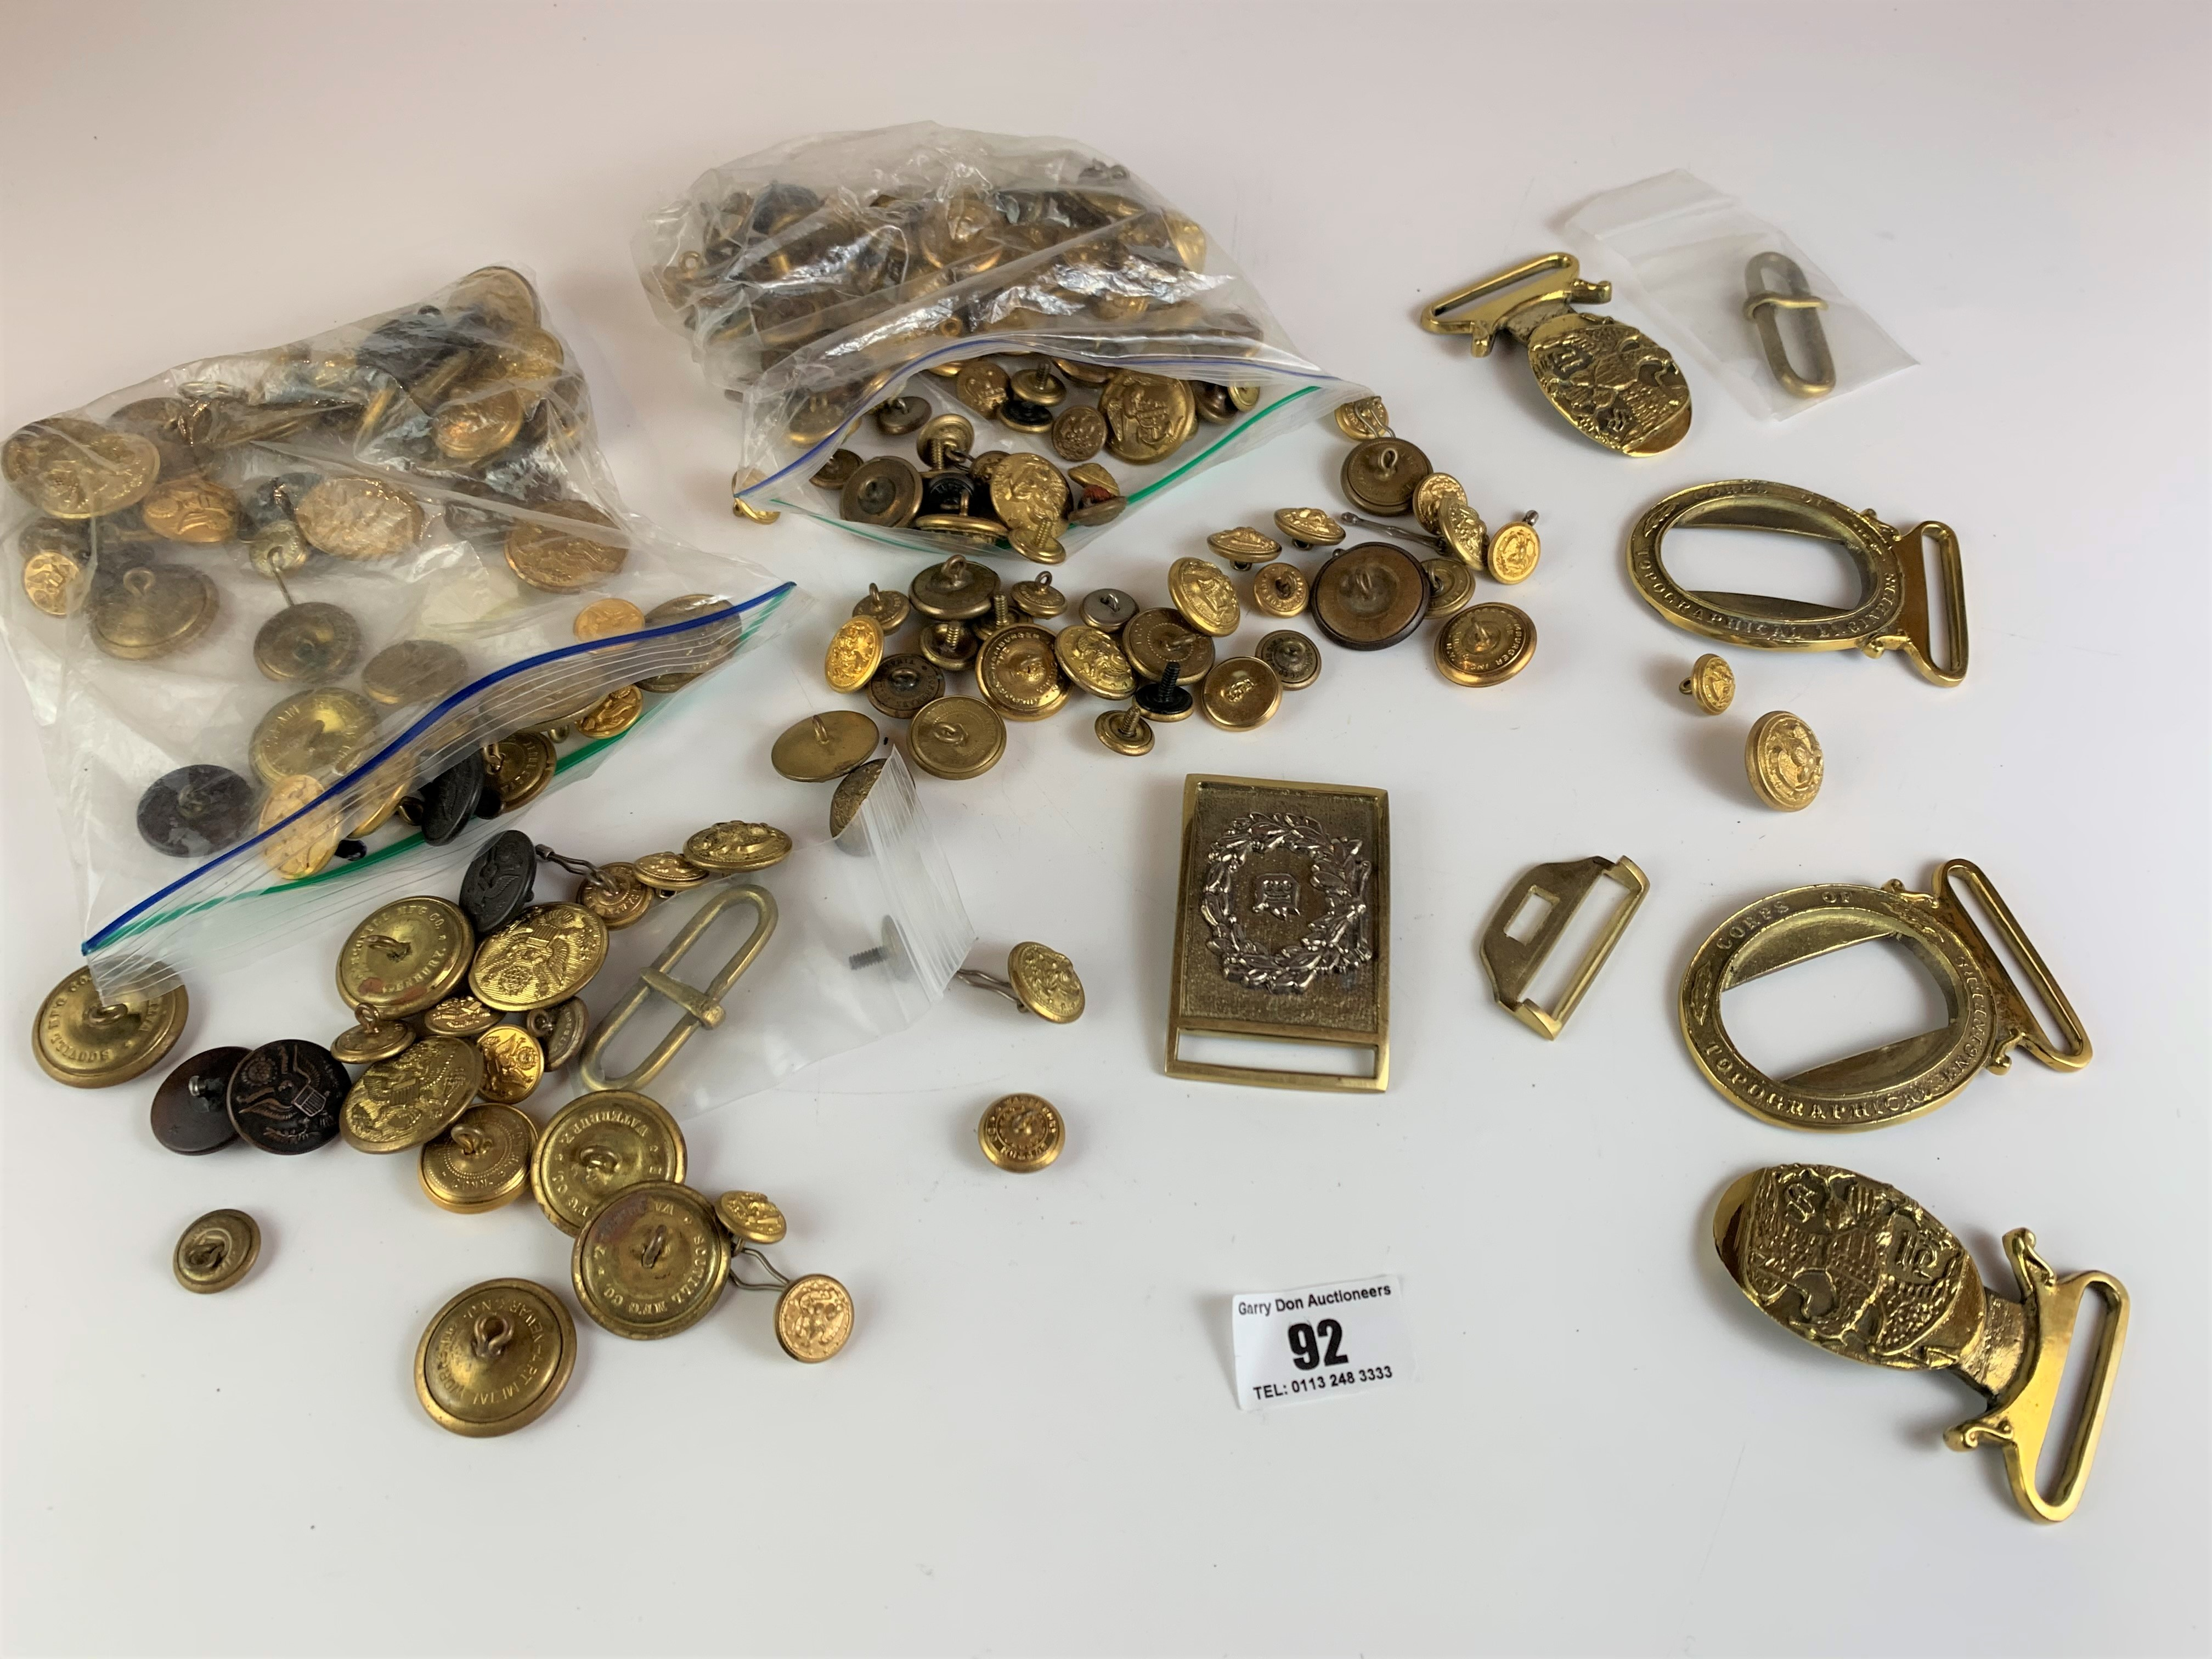 Large bag of assorted brass buttons and belt buckles